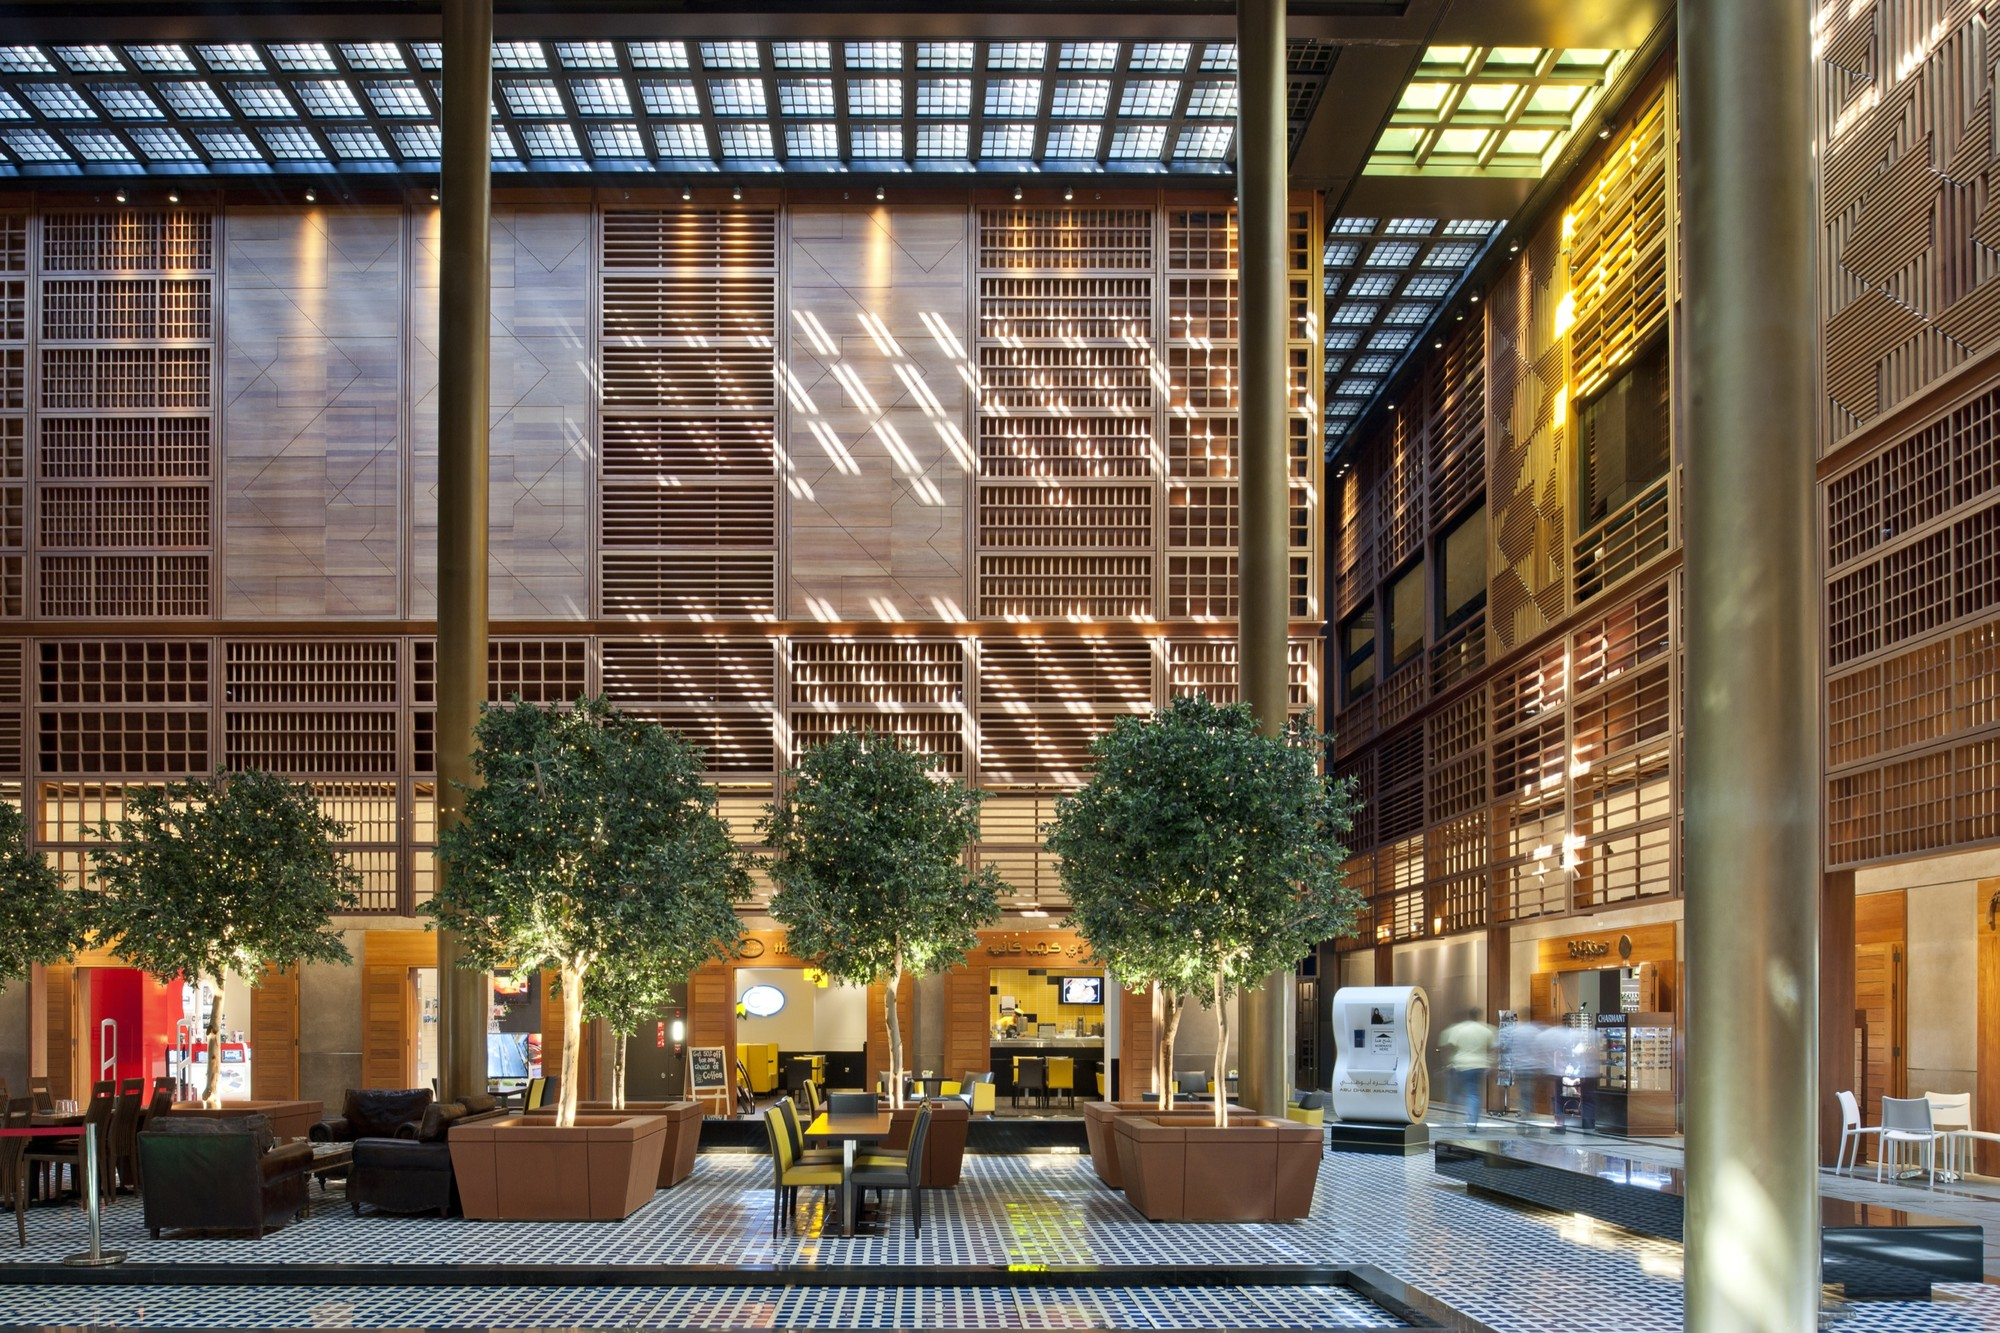 Gallery Of Abu Dhabi Central Market Foster Partners 4